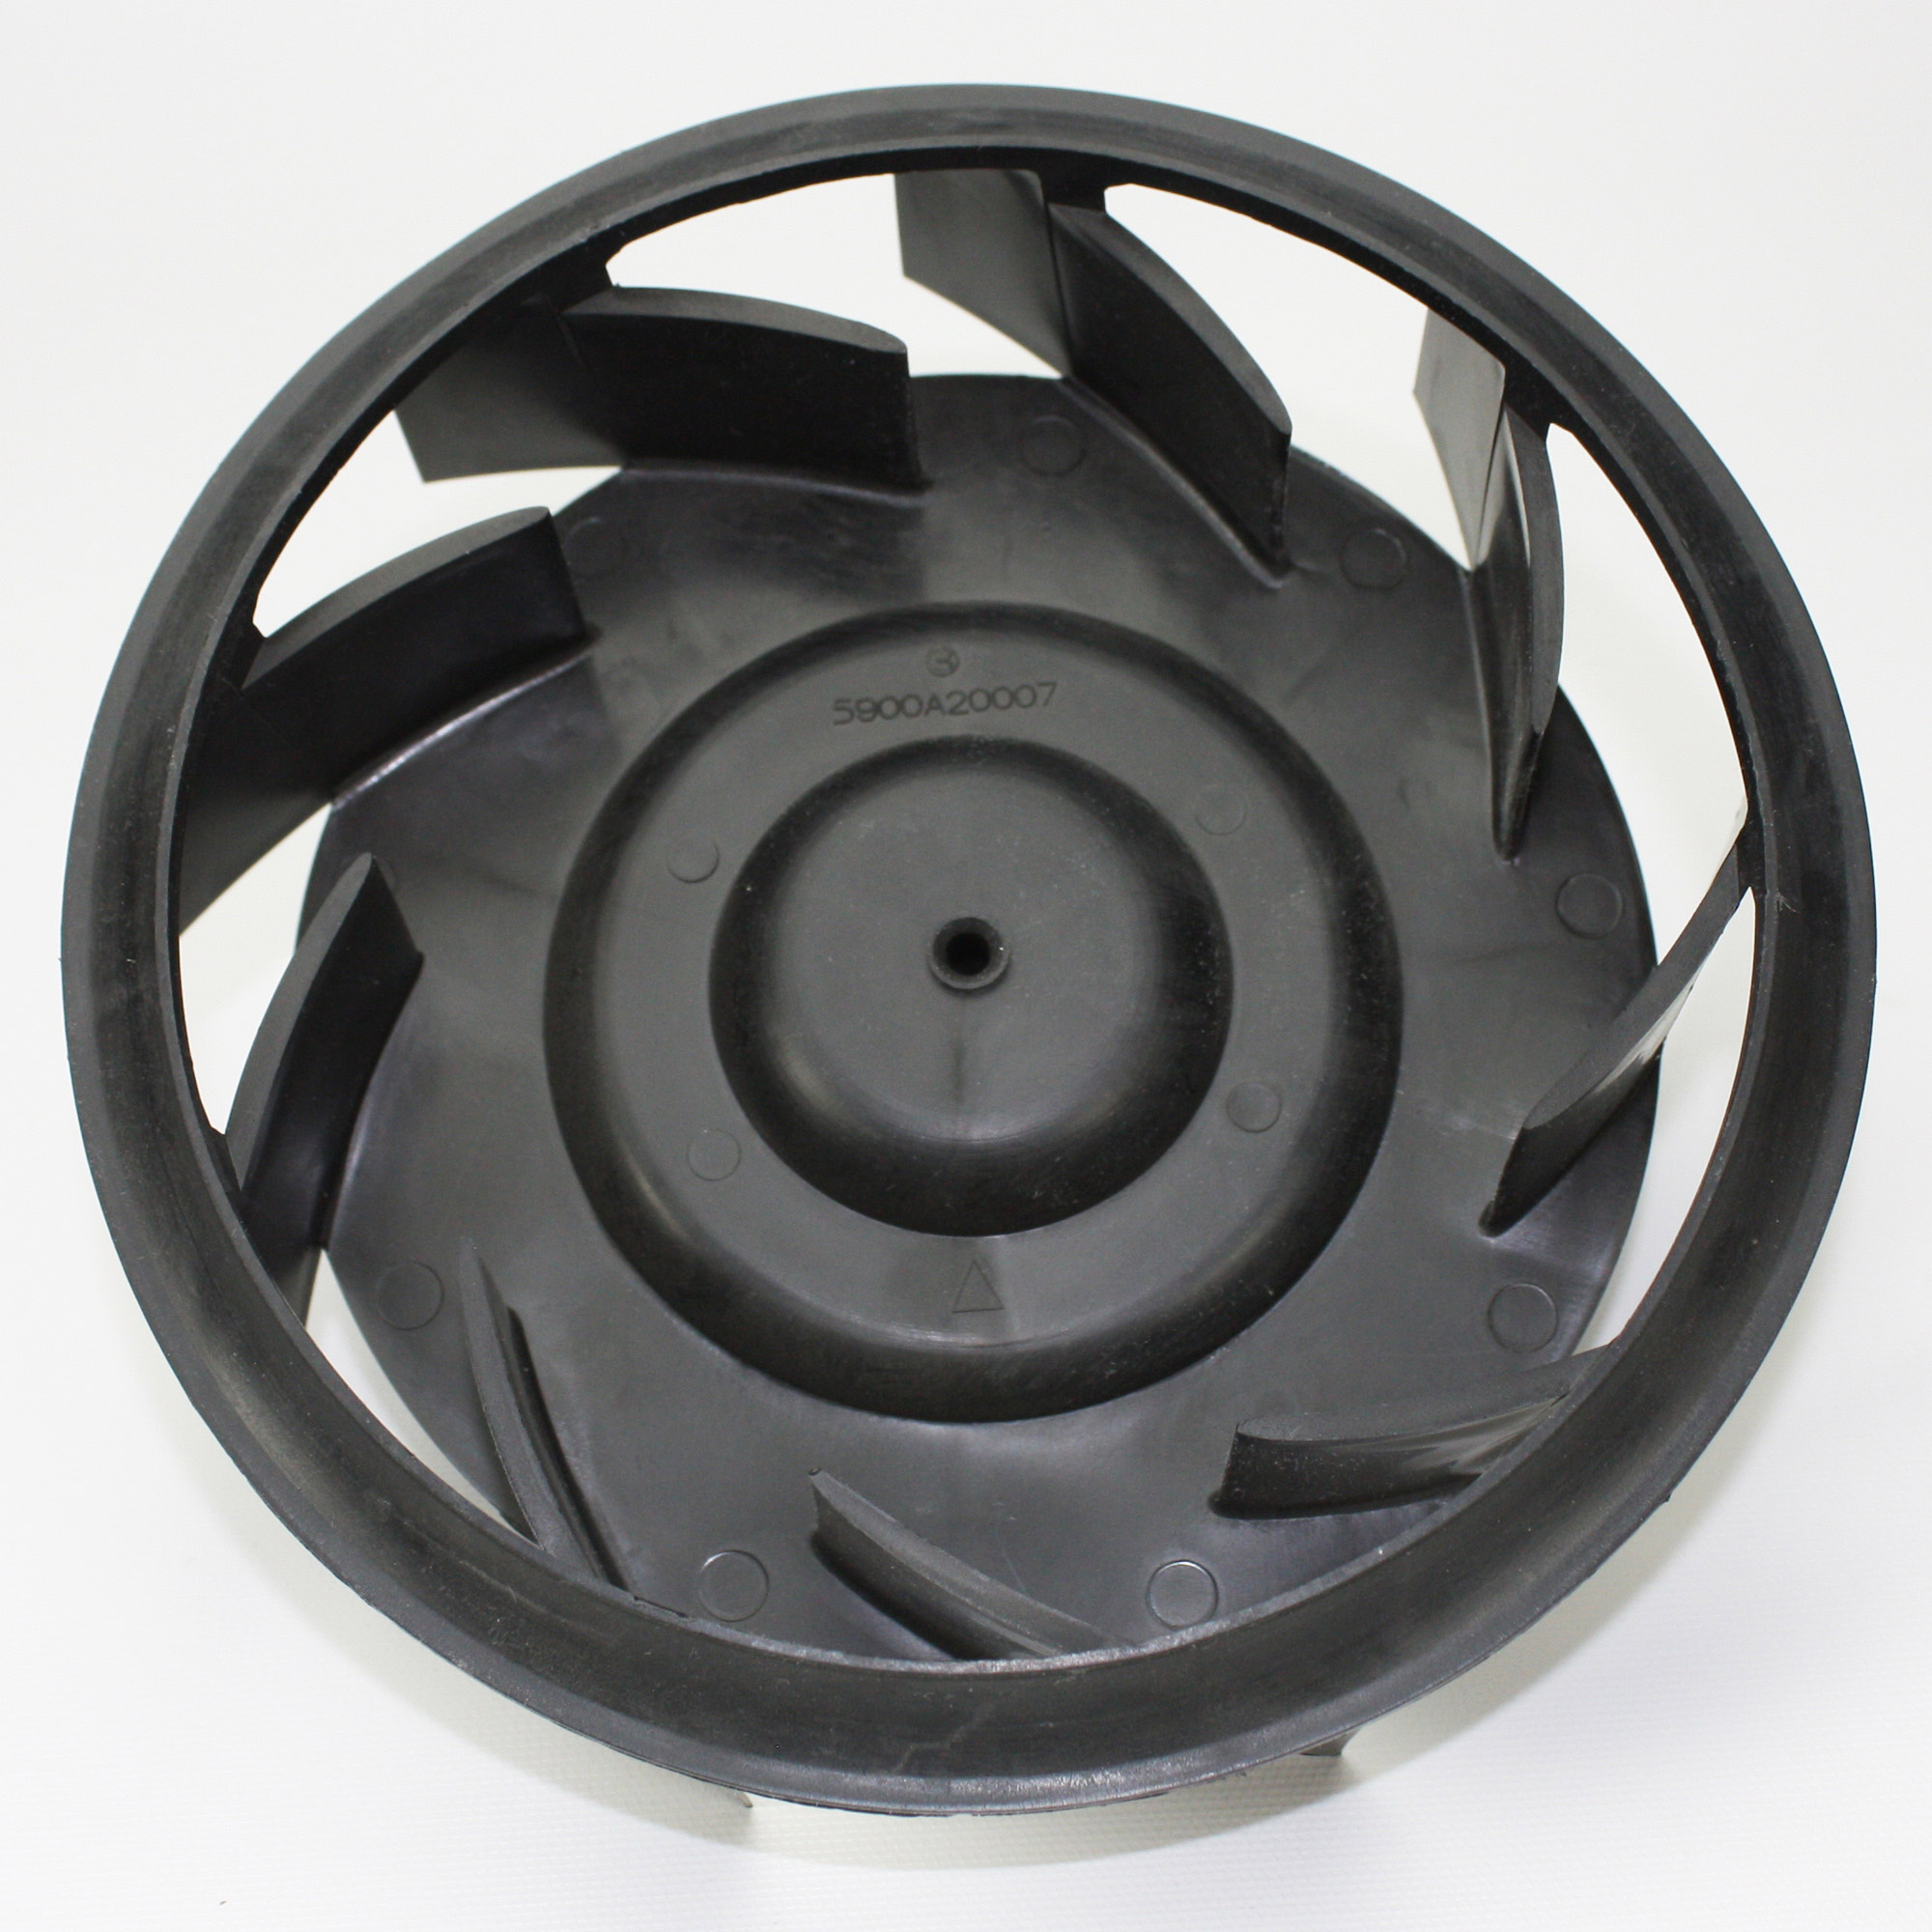 LG 5900A20007B Dehumidifier Blower Wheel